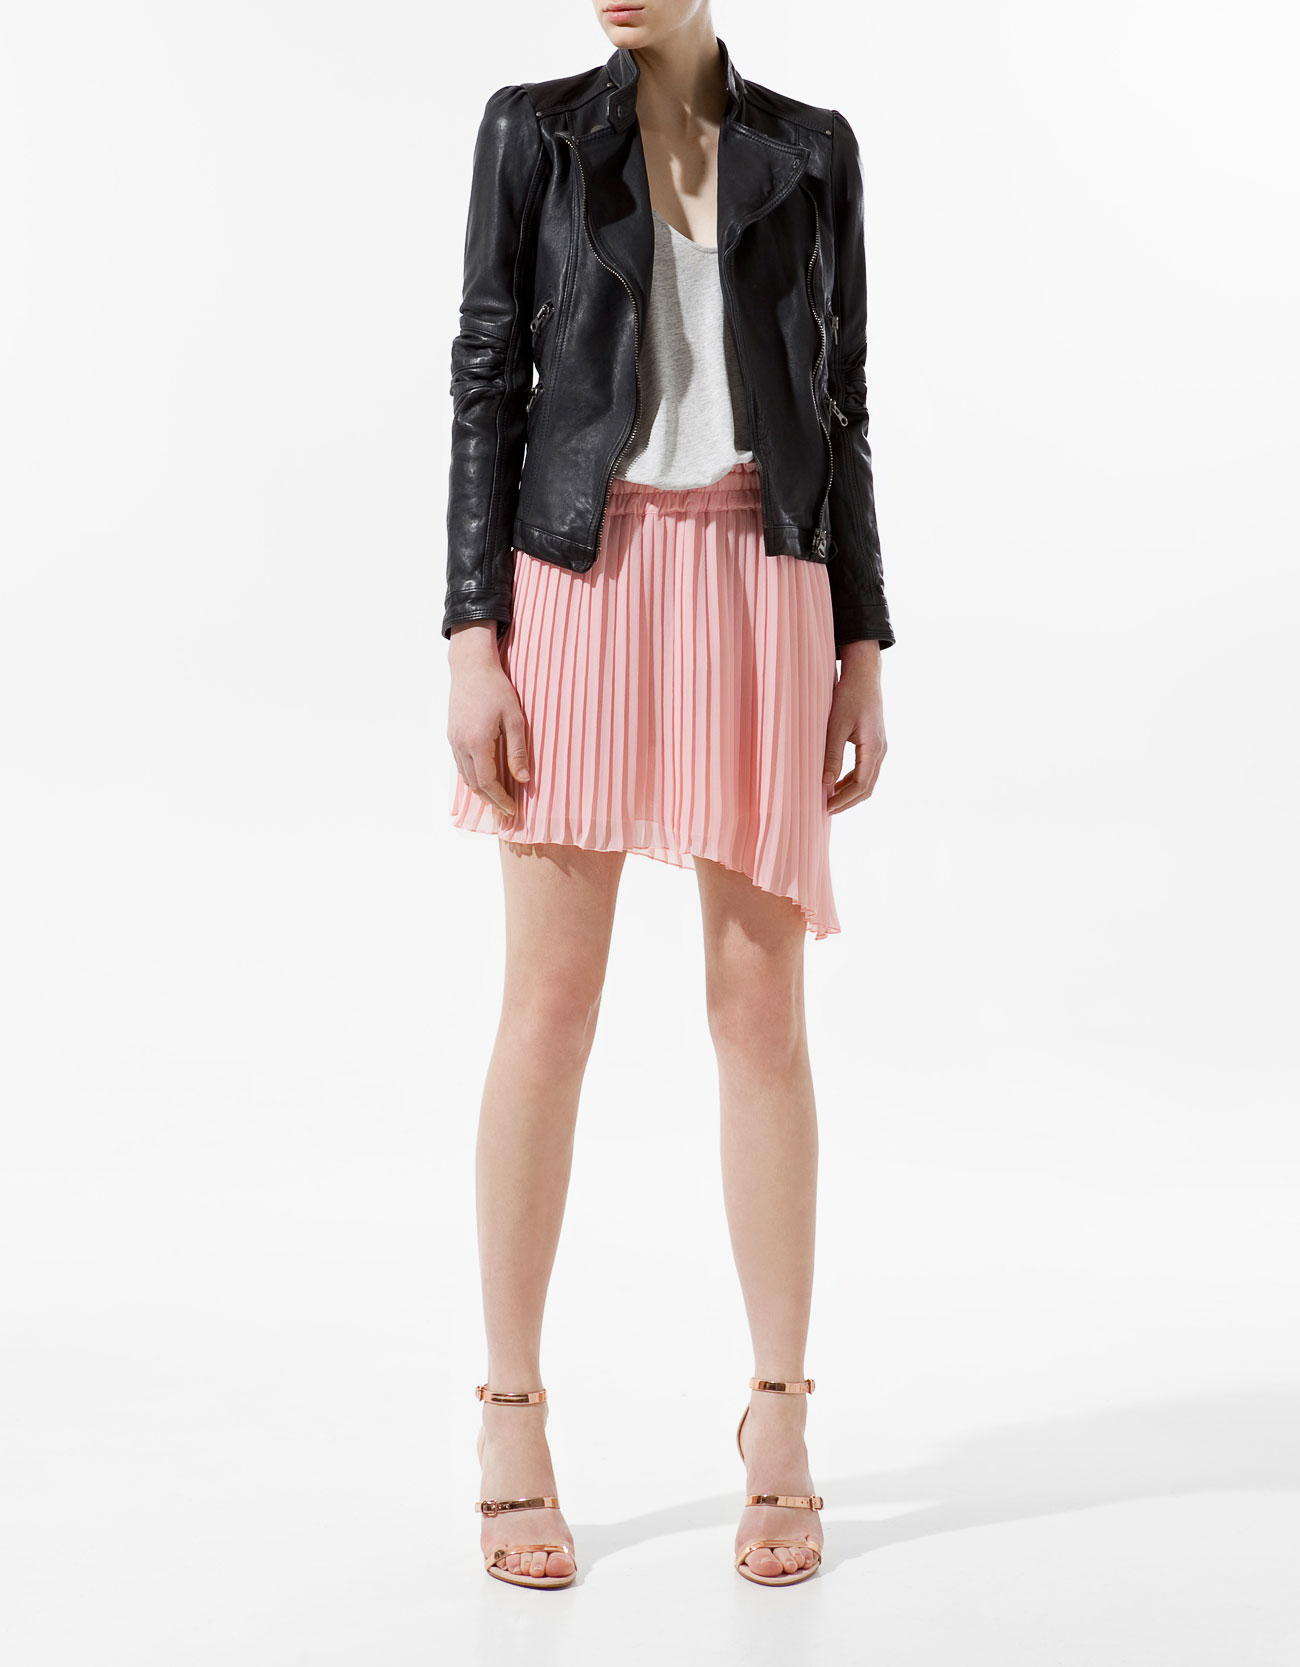 Zara Leather Jacket 20